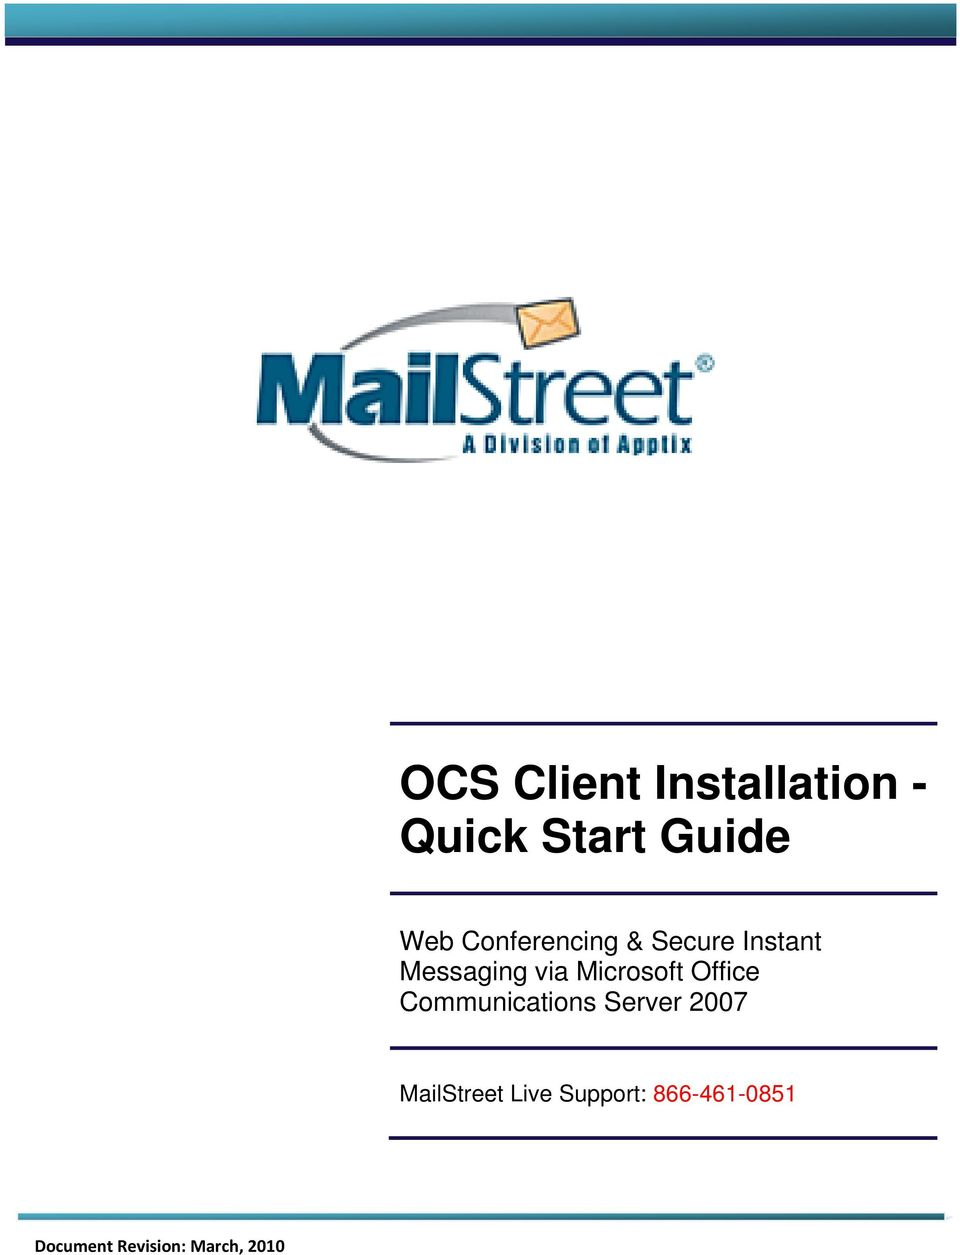 Microsoft Office Communications Server 2007